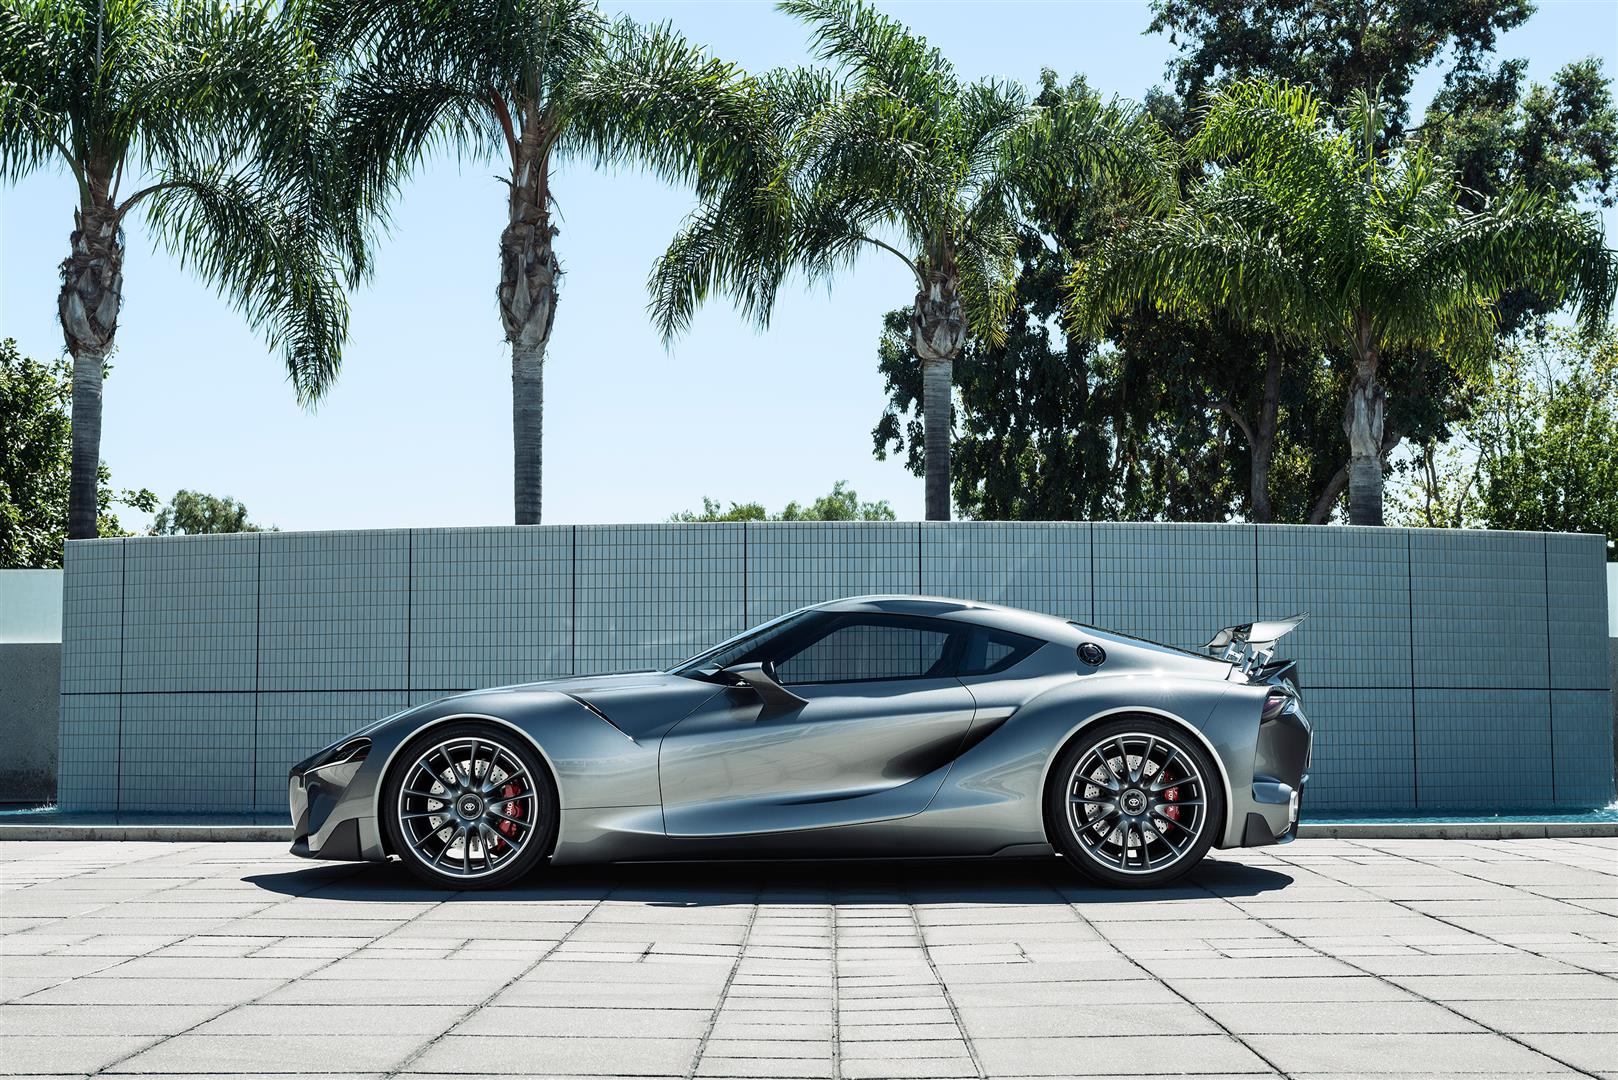 Toyota Unleashes Second Ft 1 Sports Car Concept The News Wheel